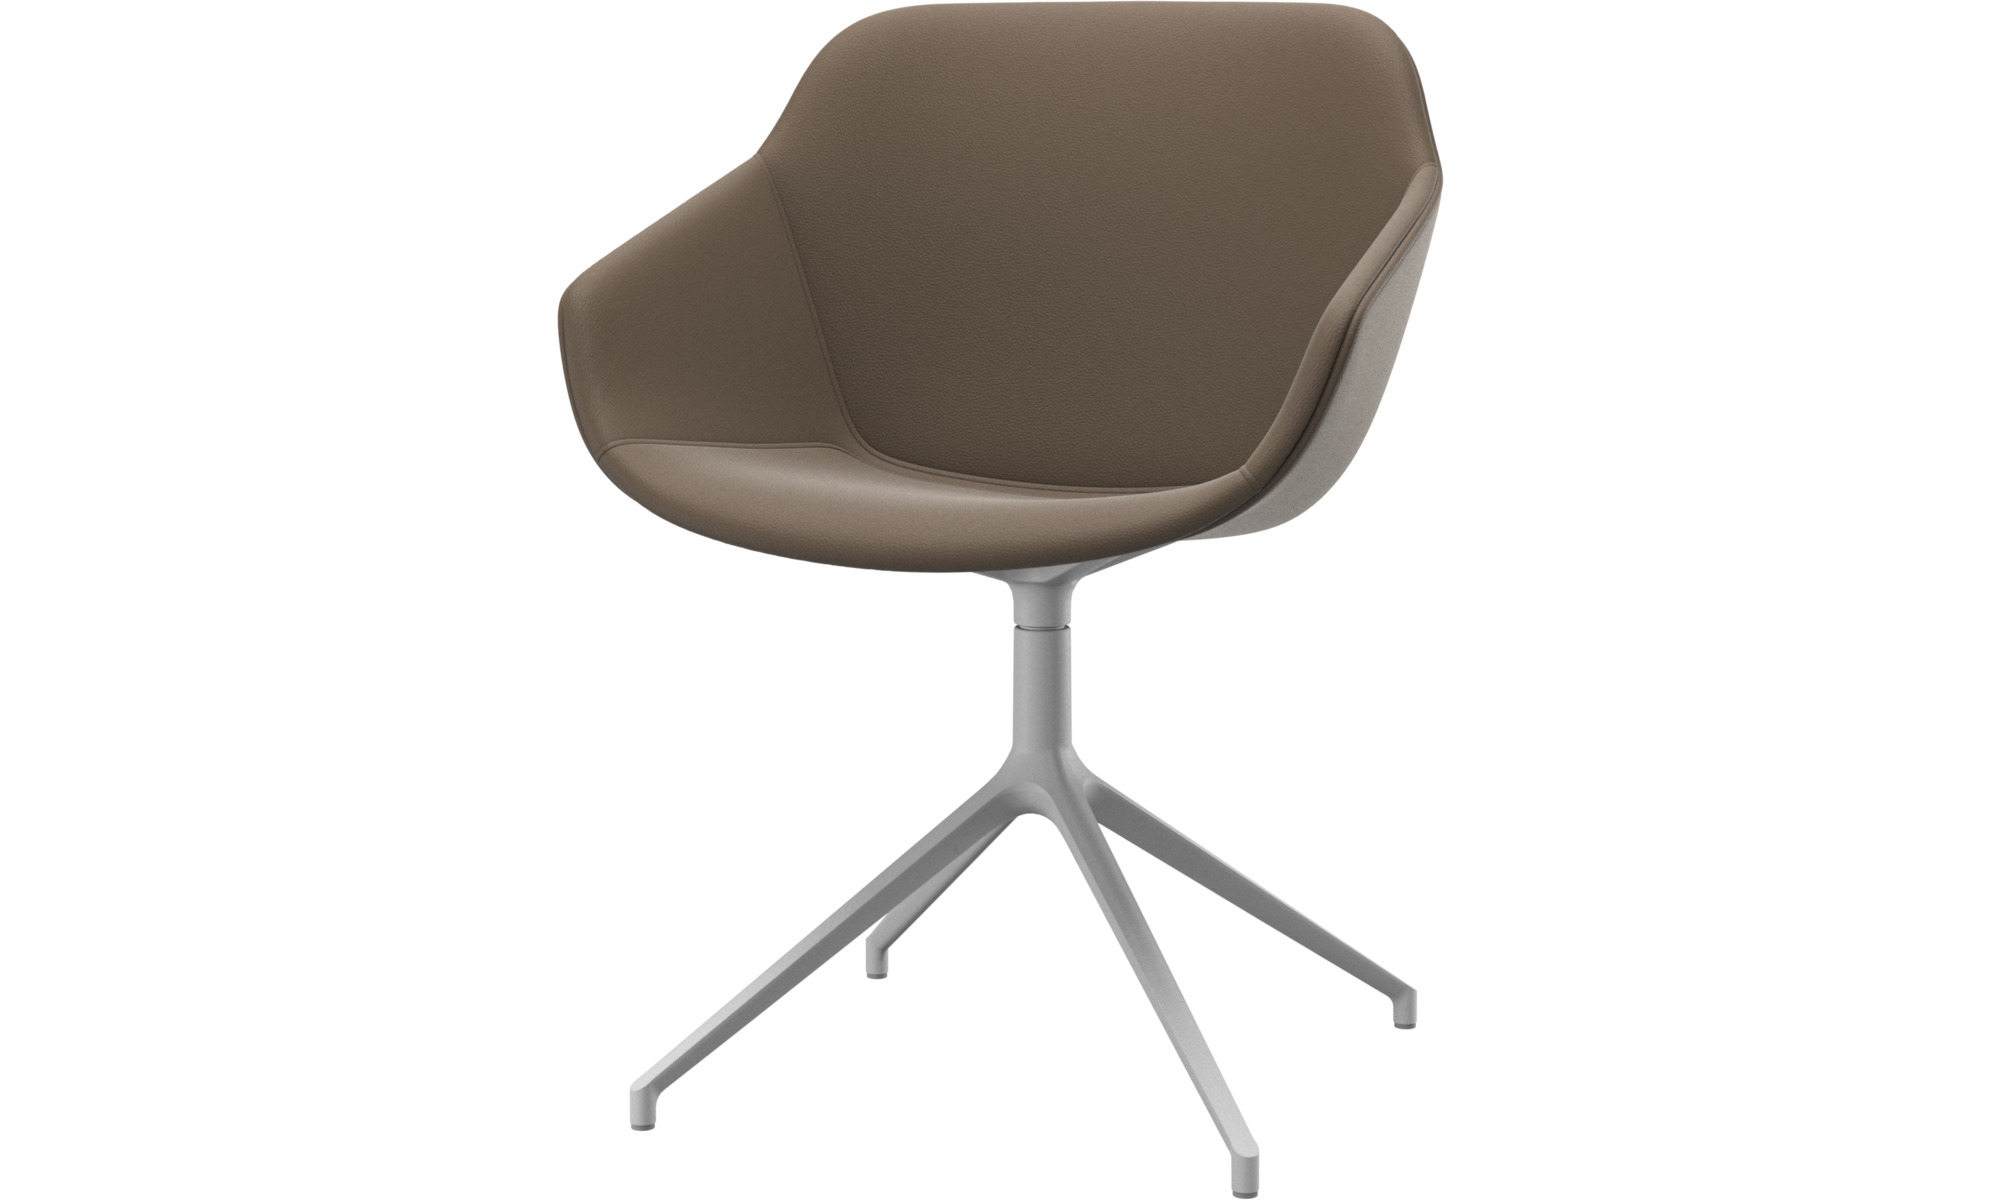 Dining chairs - Vienna chair with swivel function - Grey - Leather